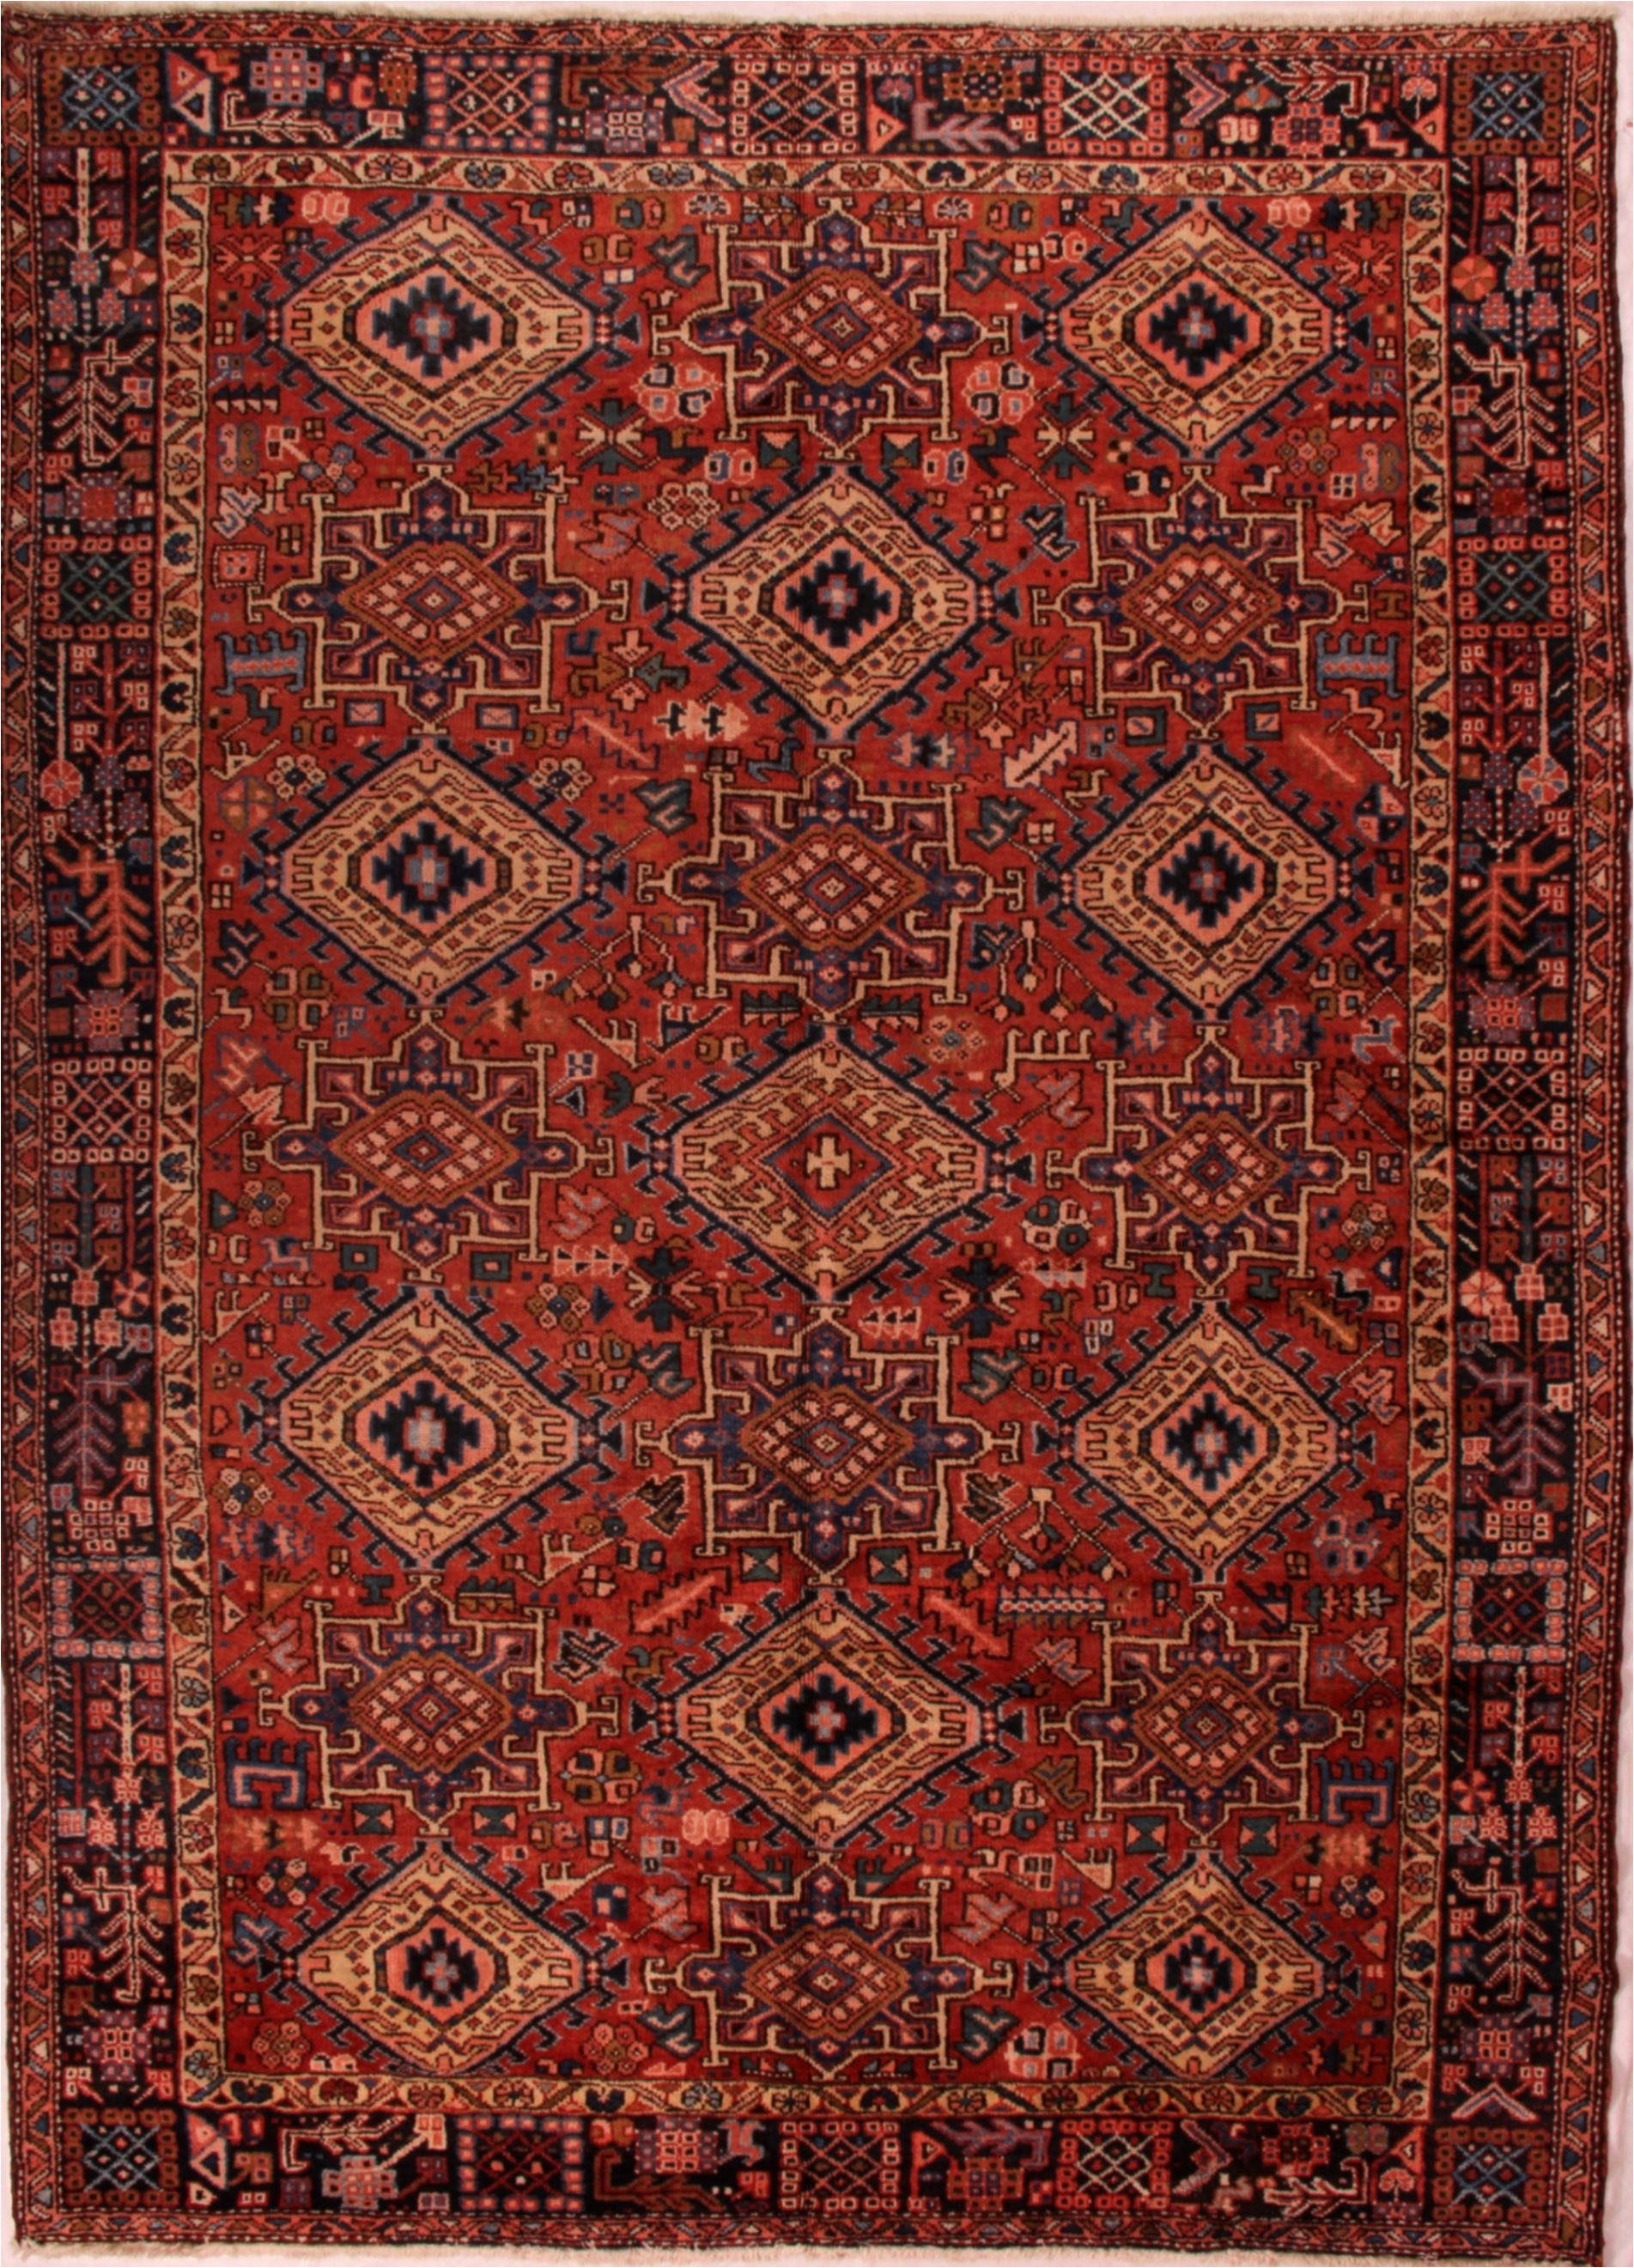 fair red living room rug or living room with red rug best shag rug ikea 10 12 rugs ikea